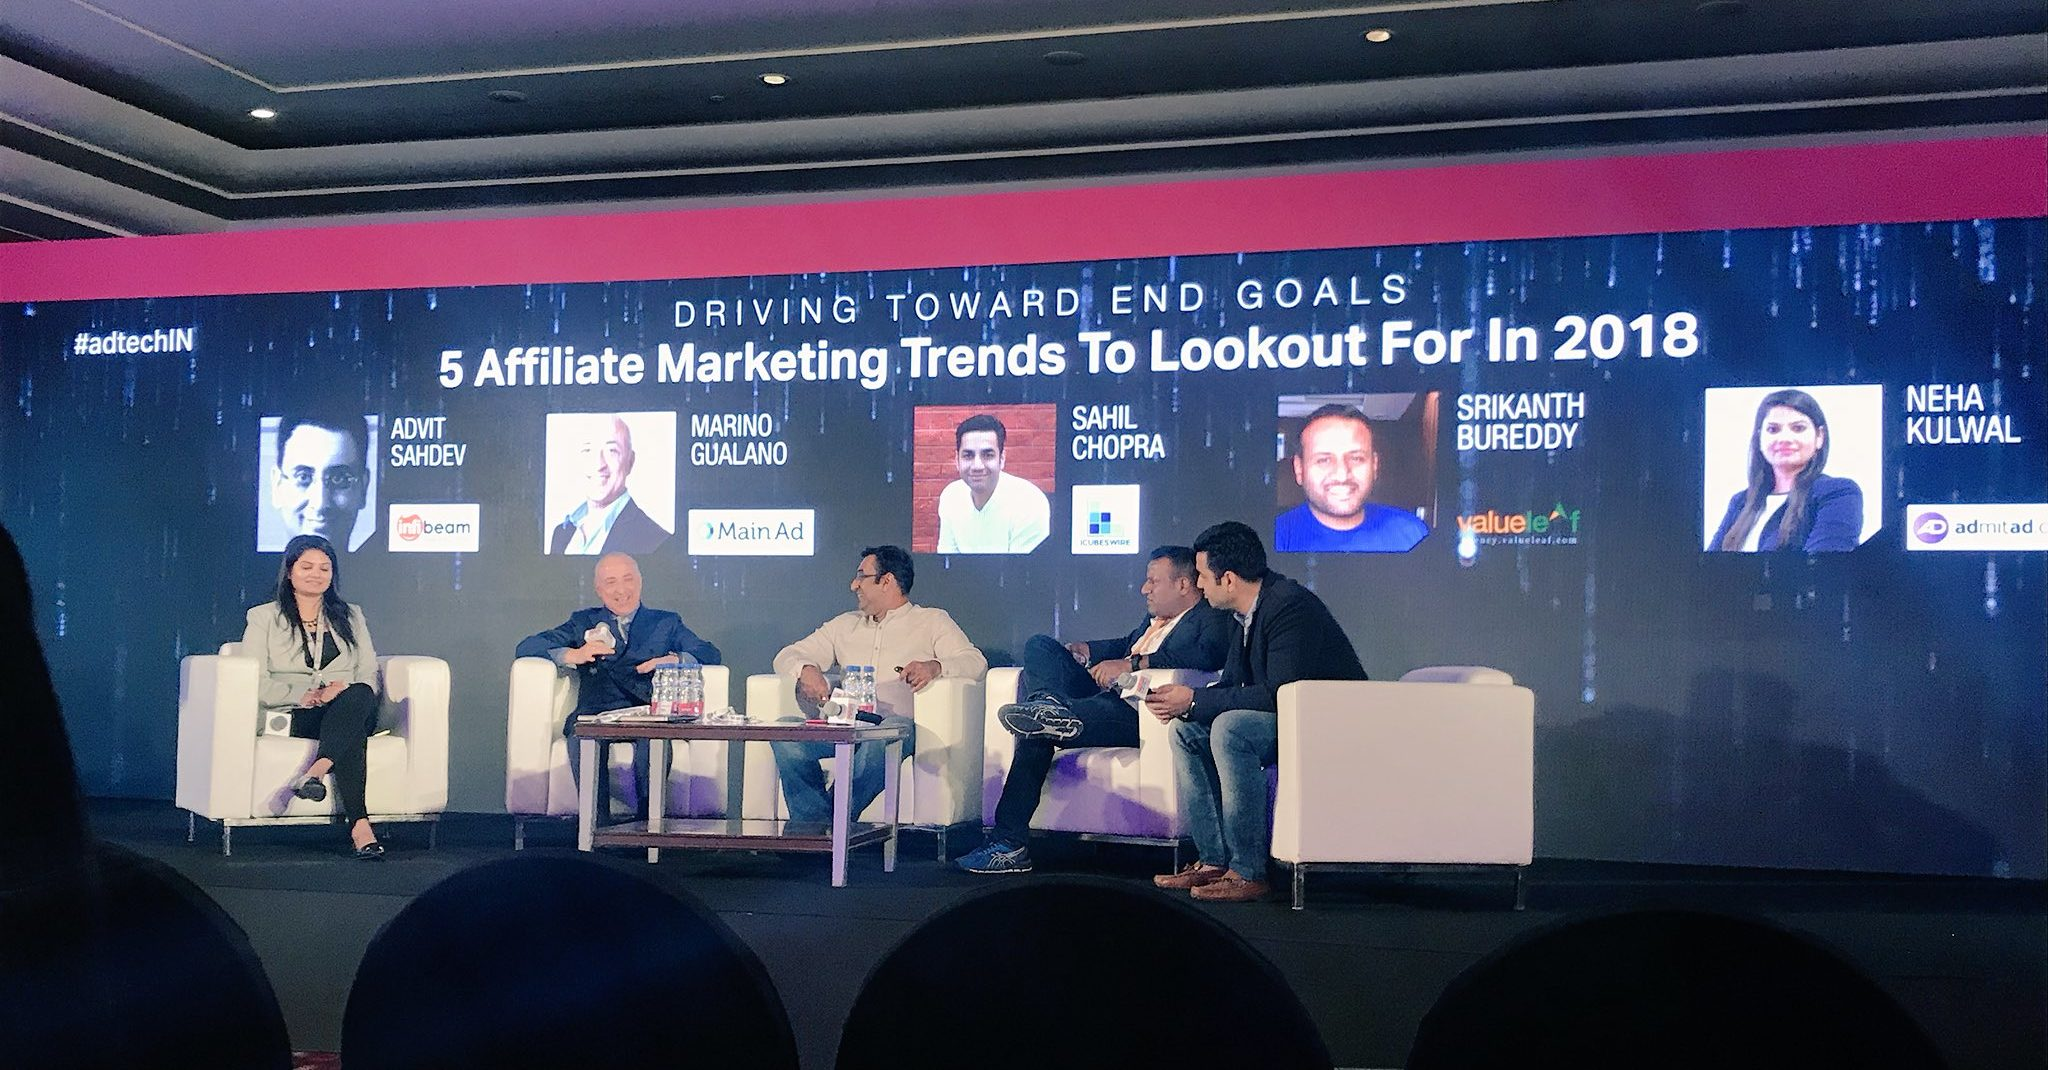 Marino Gualano, GM, on a panel discussion about '5 Affiliate Marketing Trends' at ad:tech New Delhi